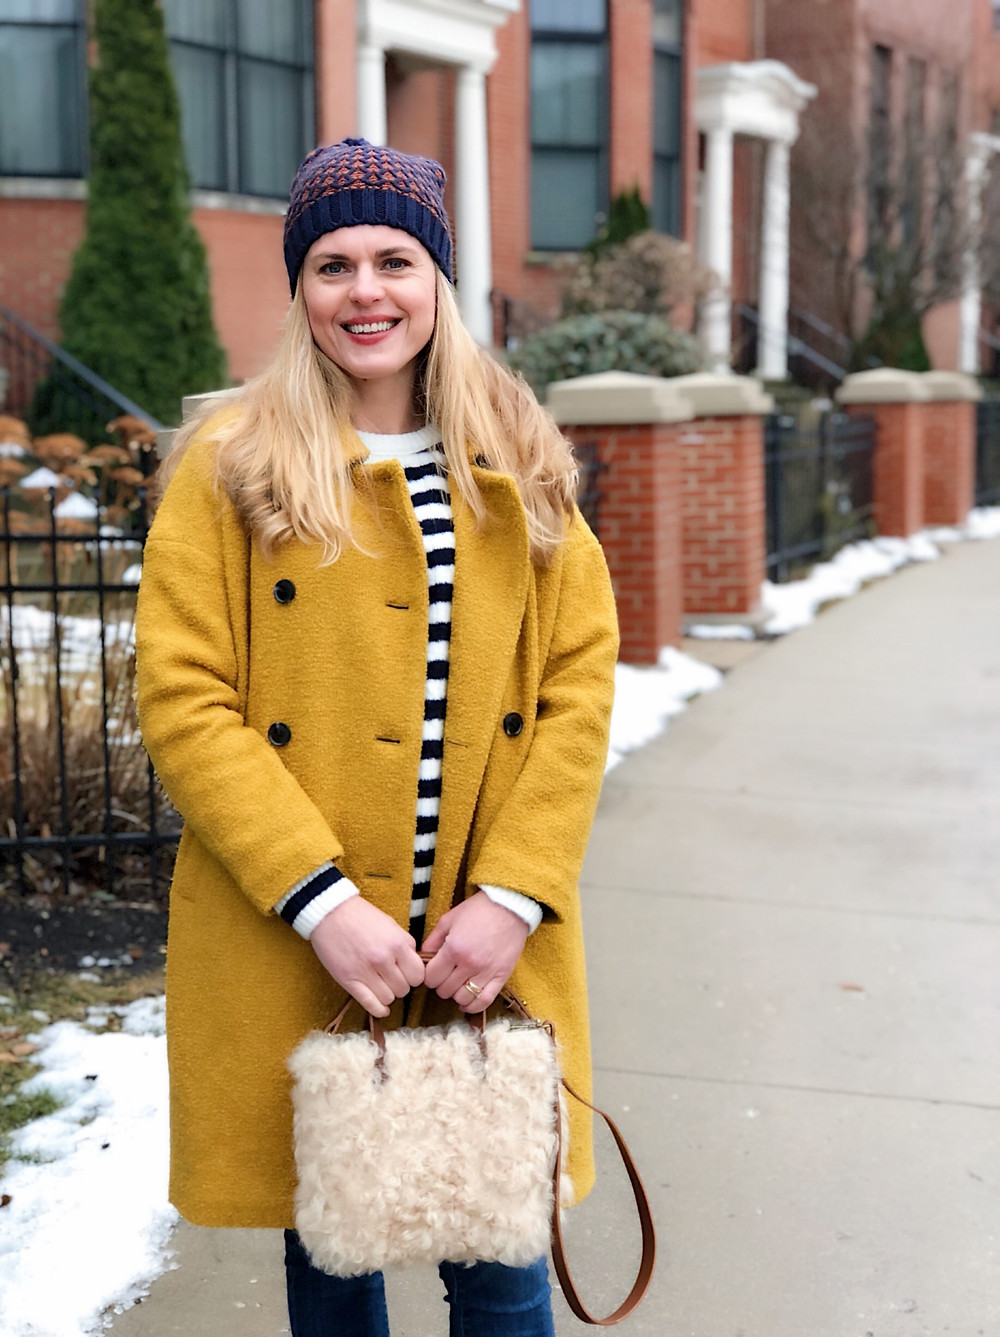 mustard yellow coat, striped sweater, jeans, shearling bag